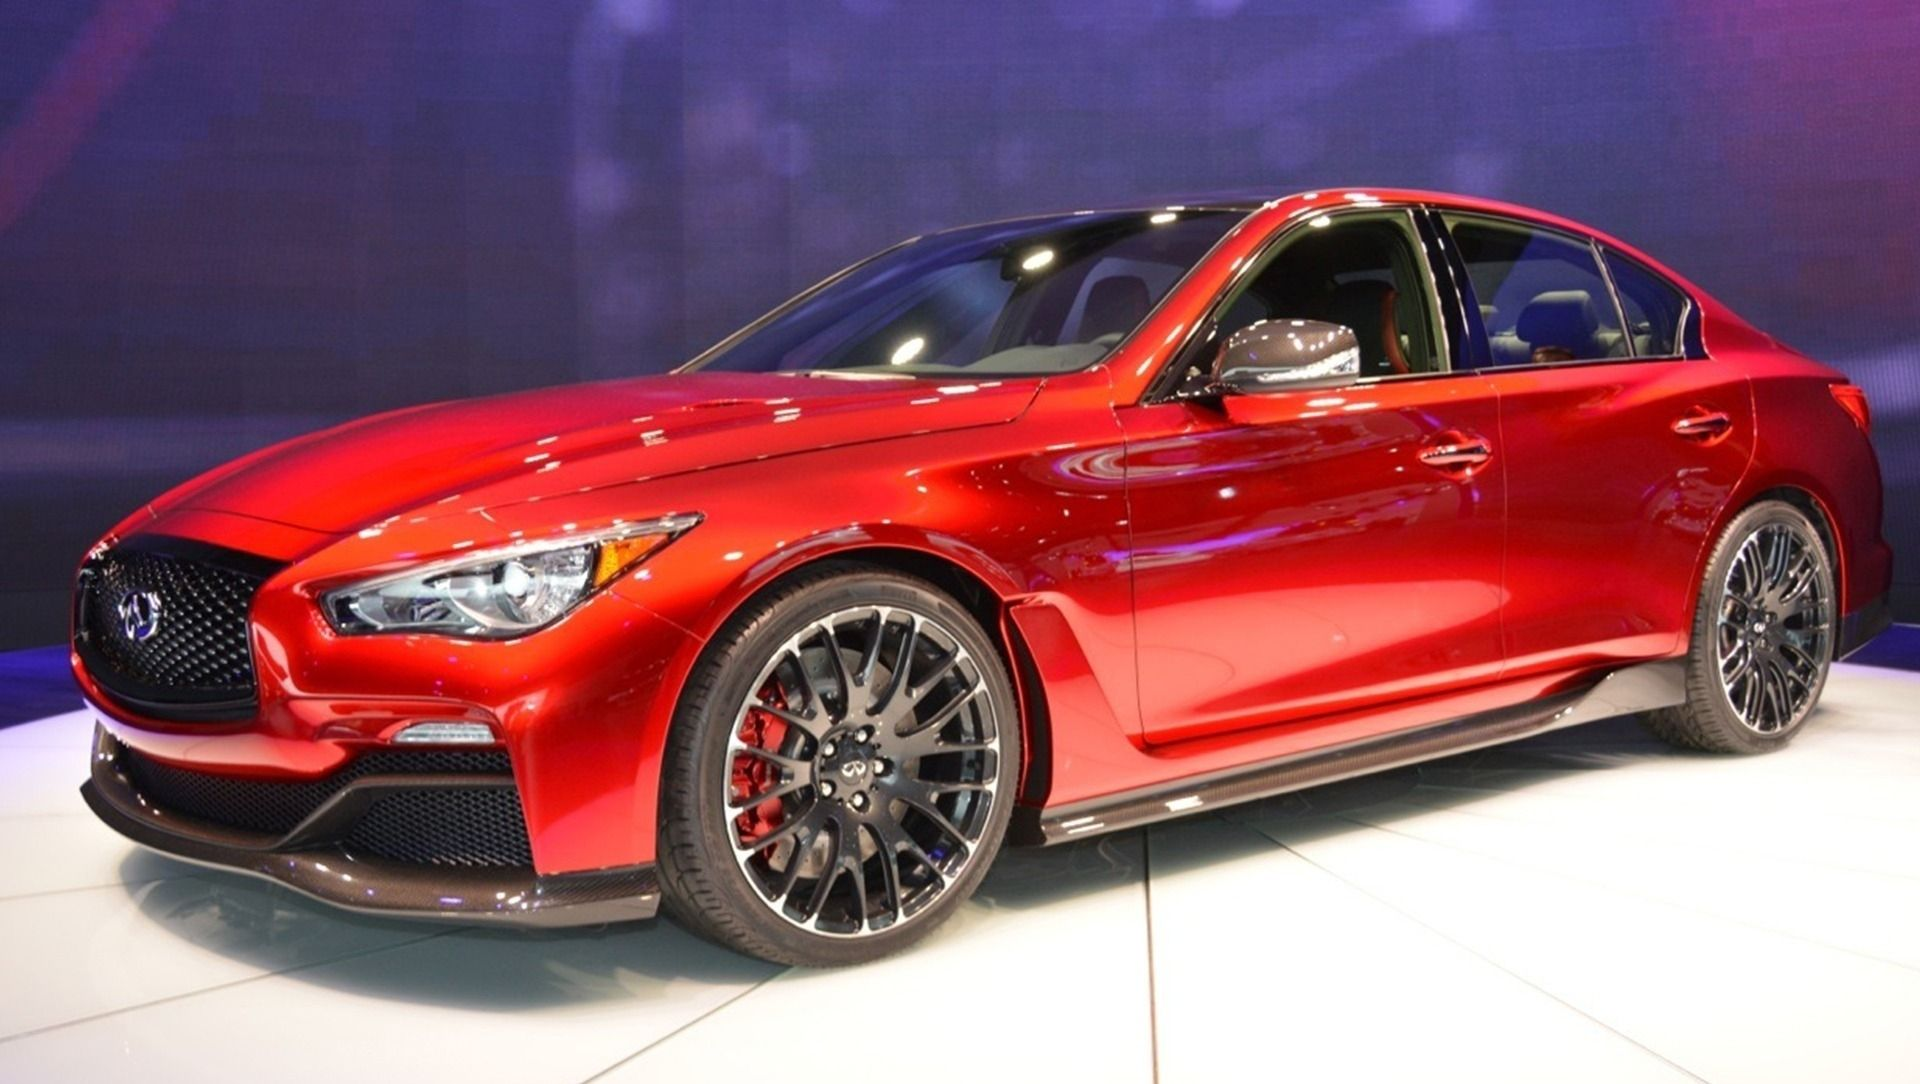 2019 Infiniti Q50 Coupe Eau Rouge Release Date And Specs